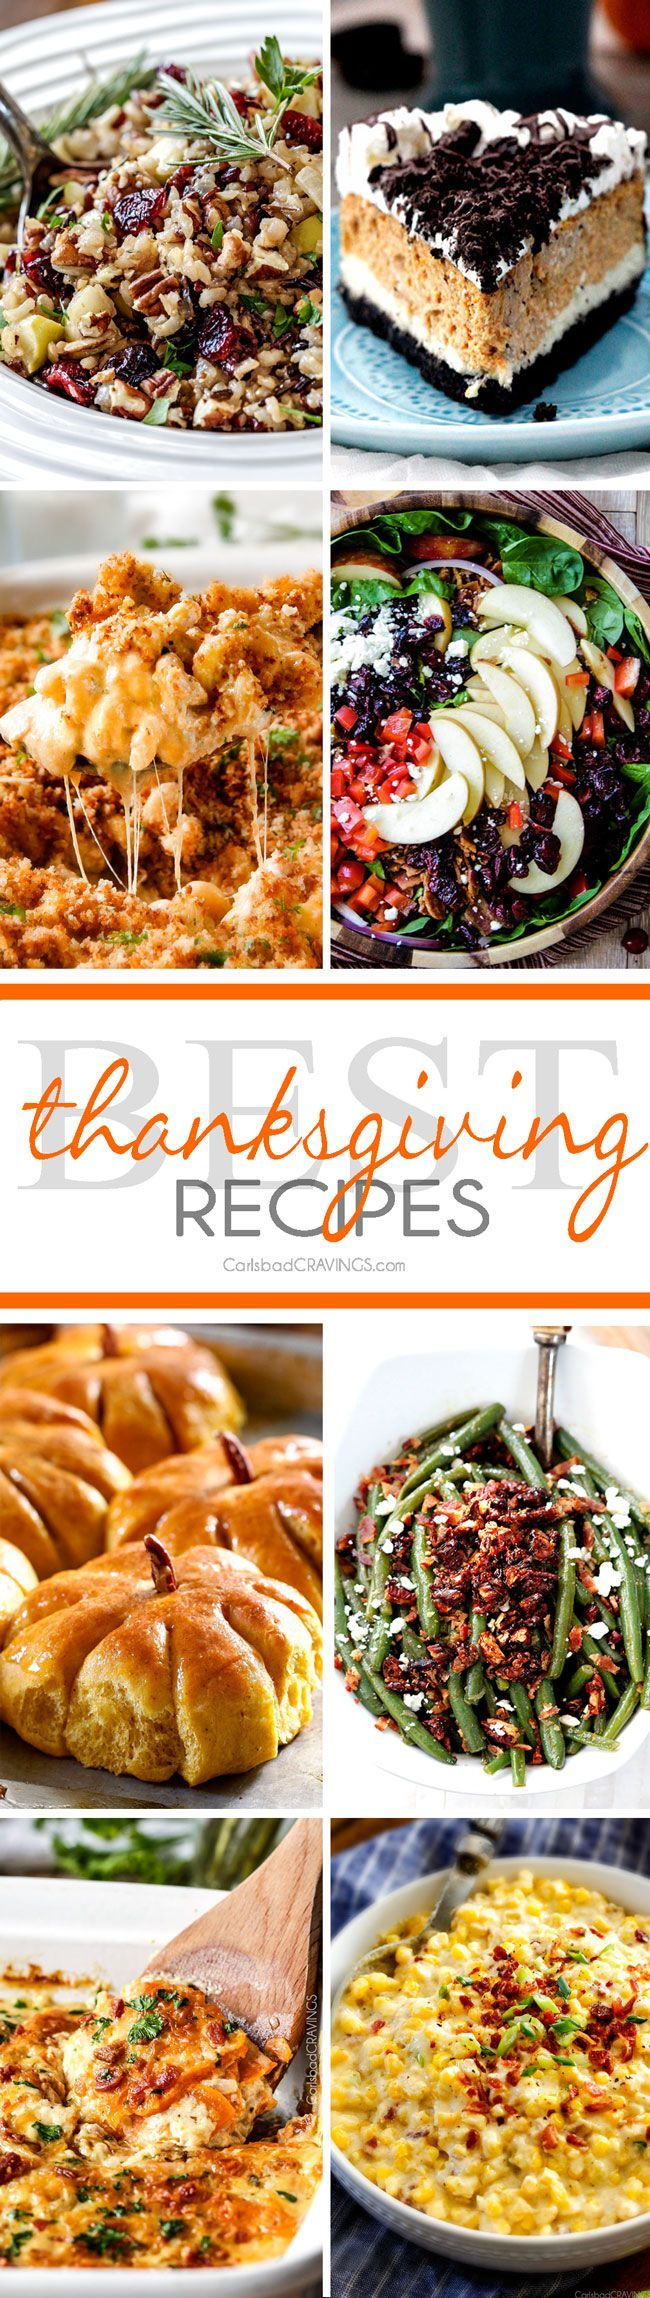 Over 25 of the BEST Thanksgiving Recipes all in ONE spot from appetizers, sides and desserts! You are guaranteed to find a new family favorite!